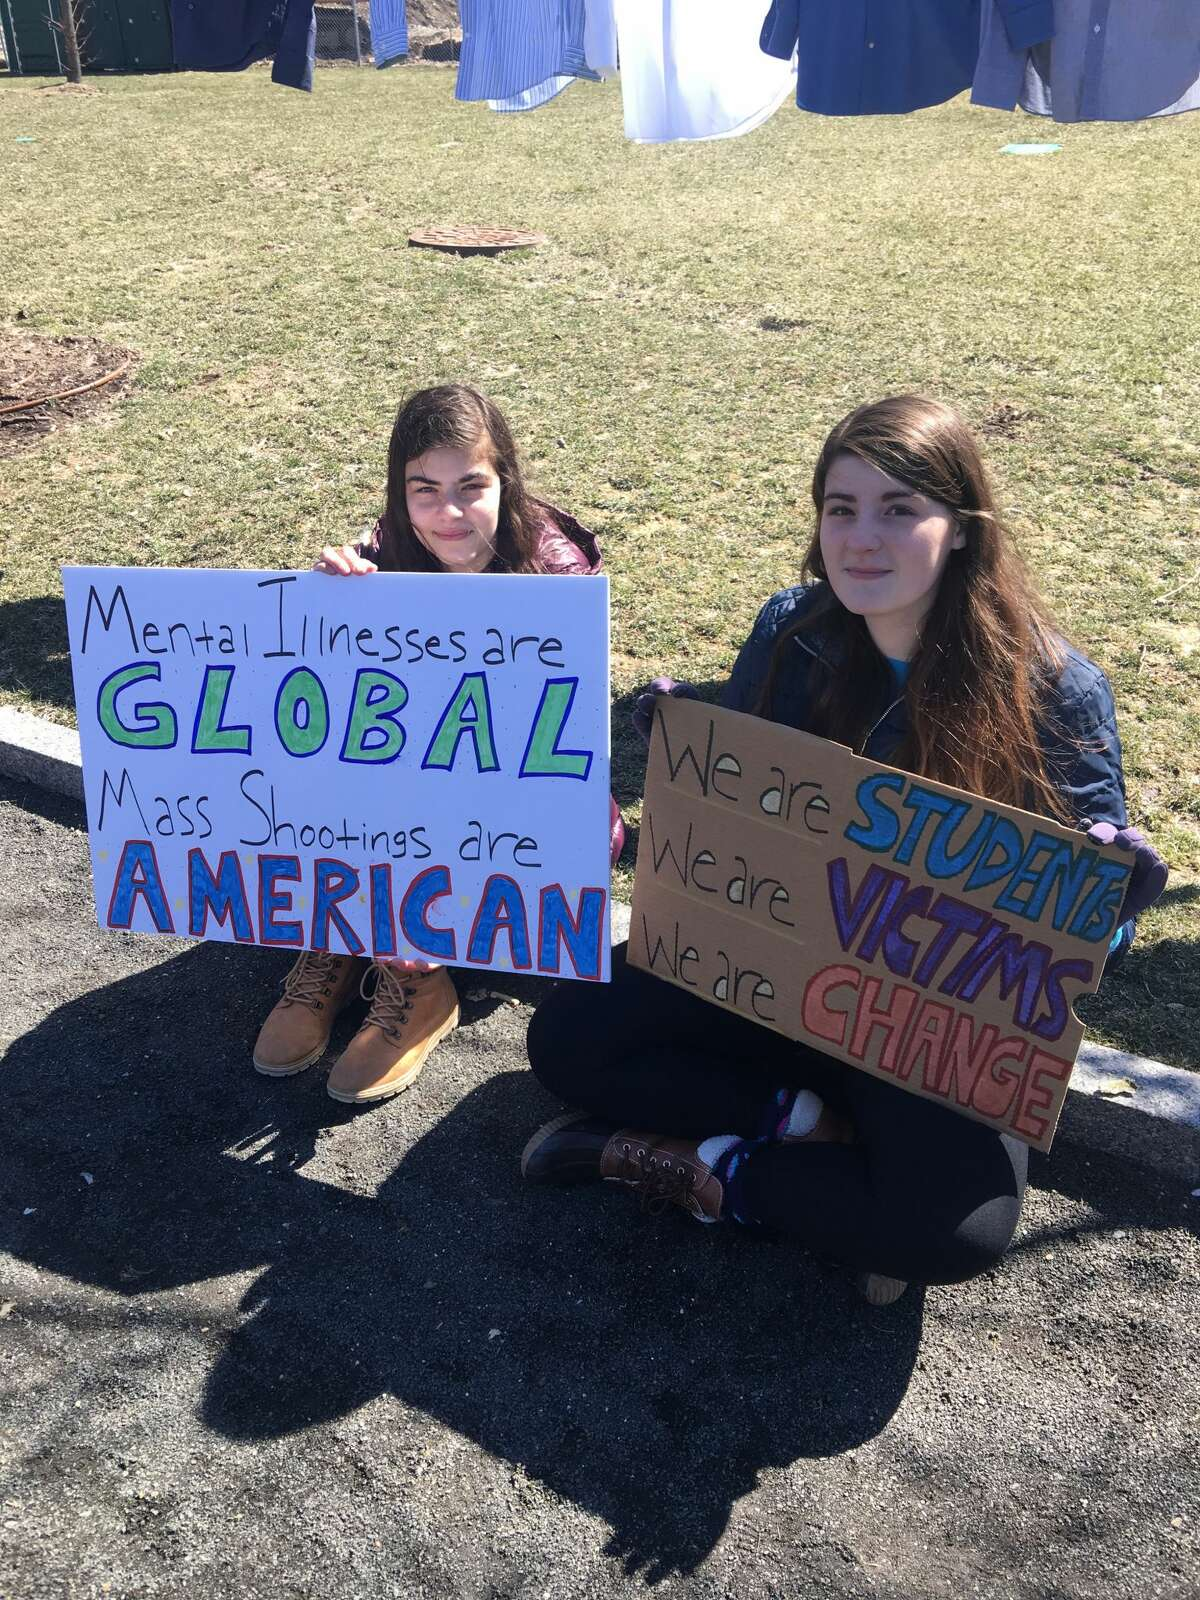 Rebecca Keyes (left) and Hannah Keyes (right), students at Norwalk High School, at the March for Our Lives in Stamford, Conn. on March 24, 2018.